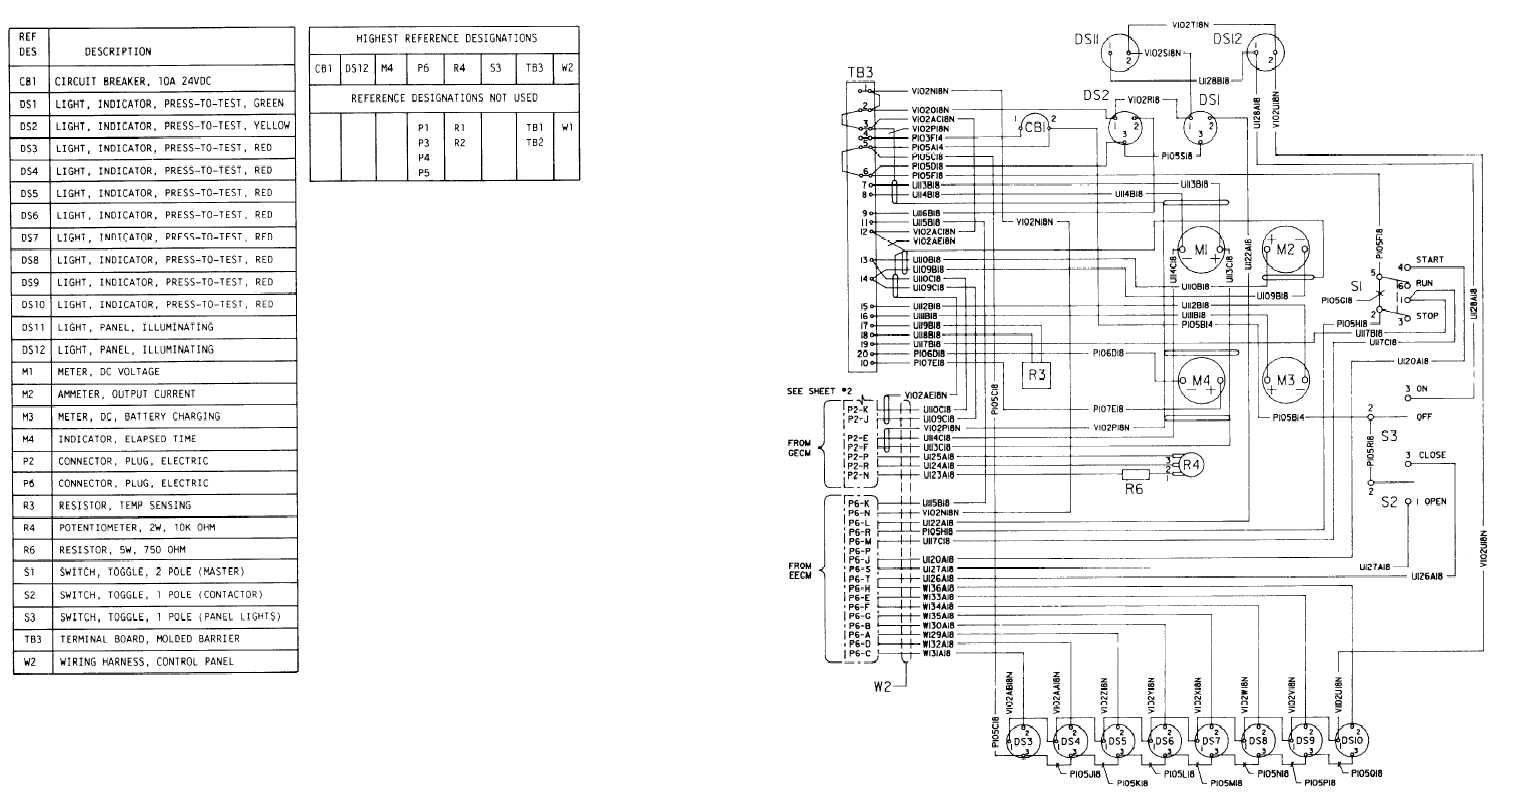 Fire Alarm Control Panel Wiring Diagram